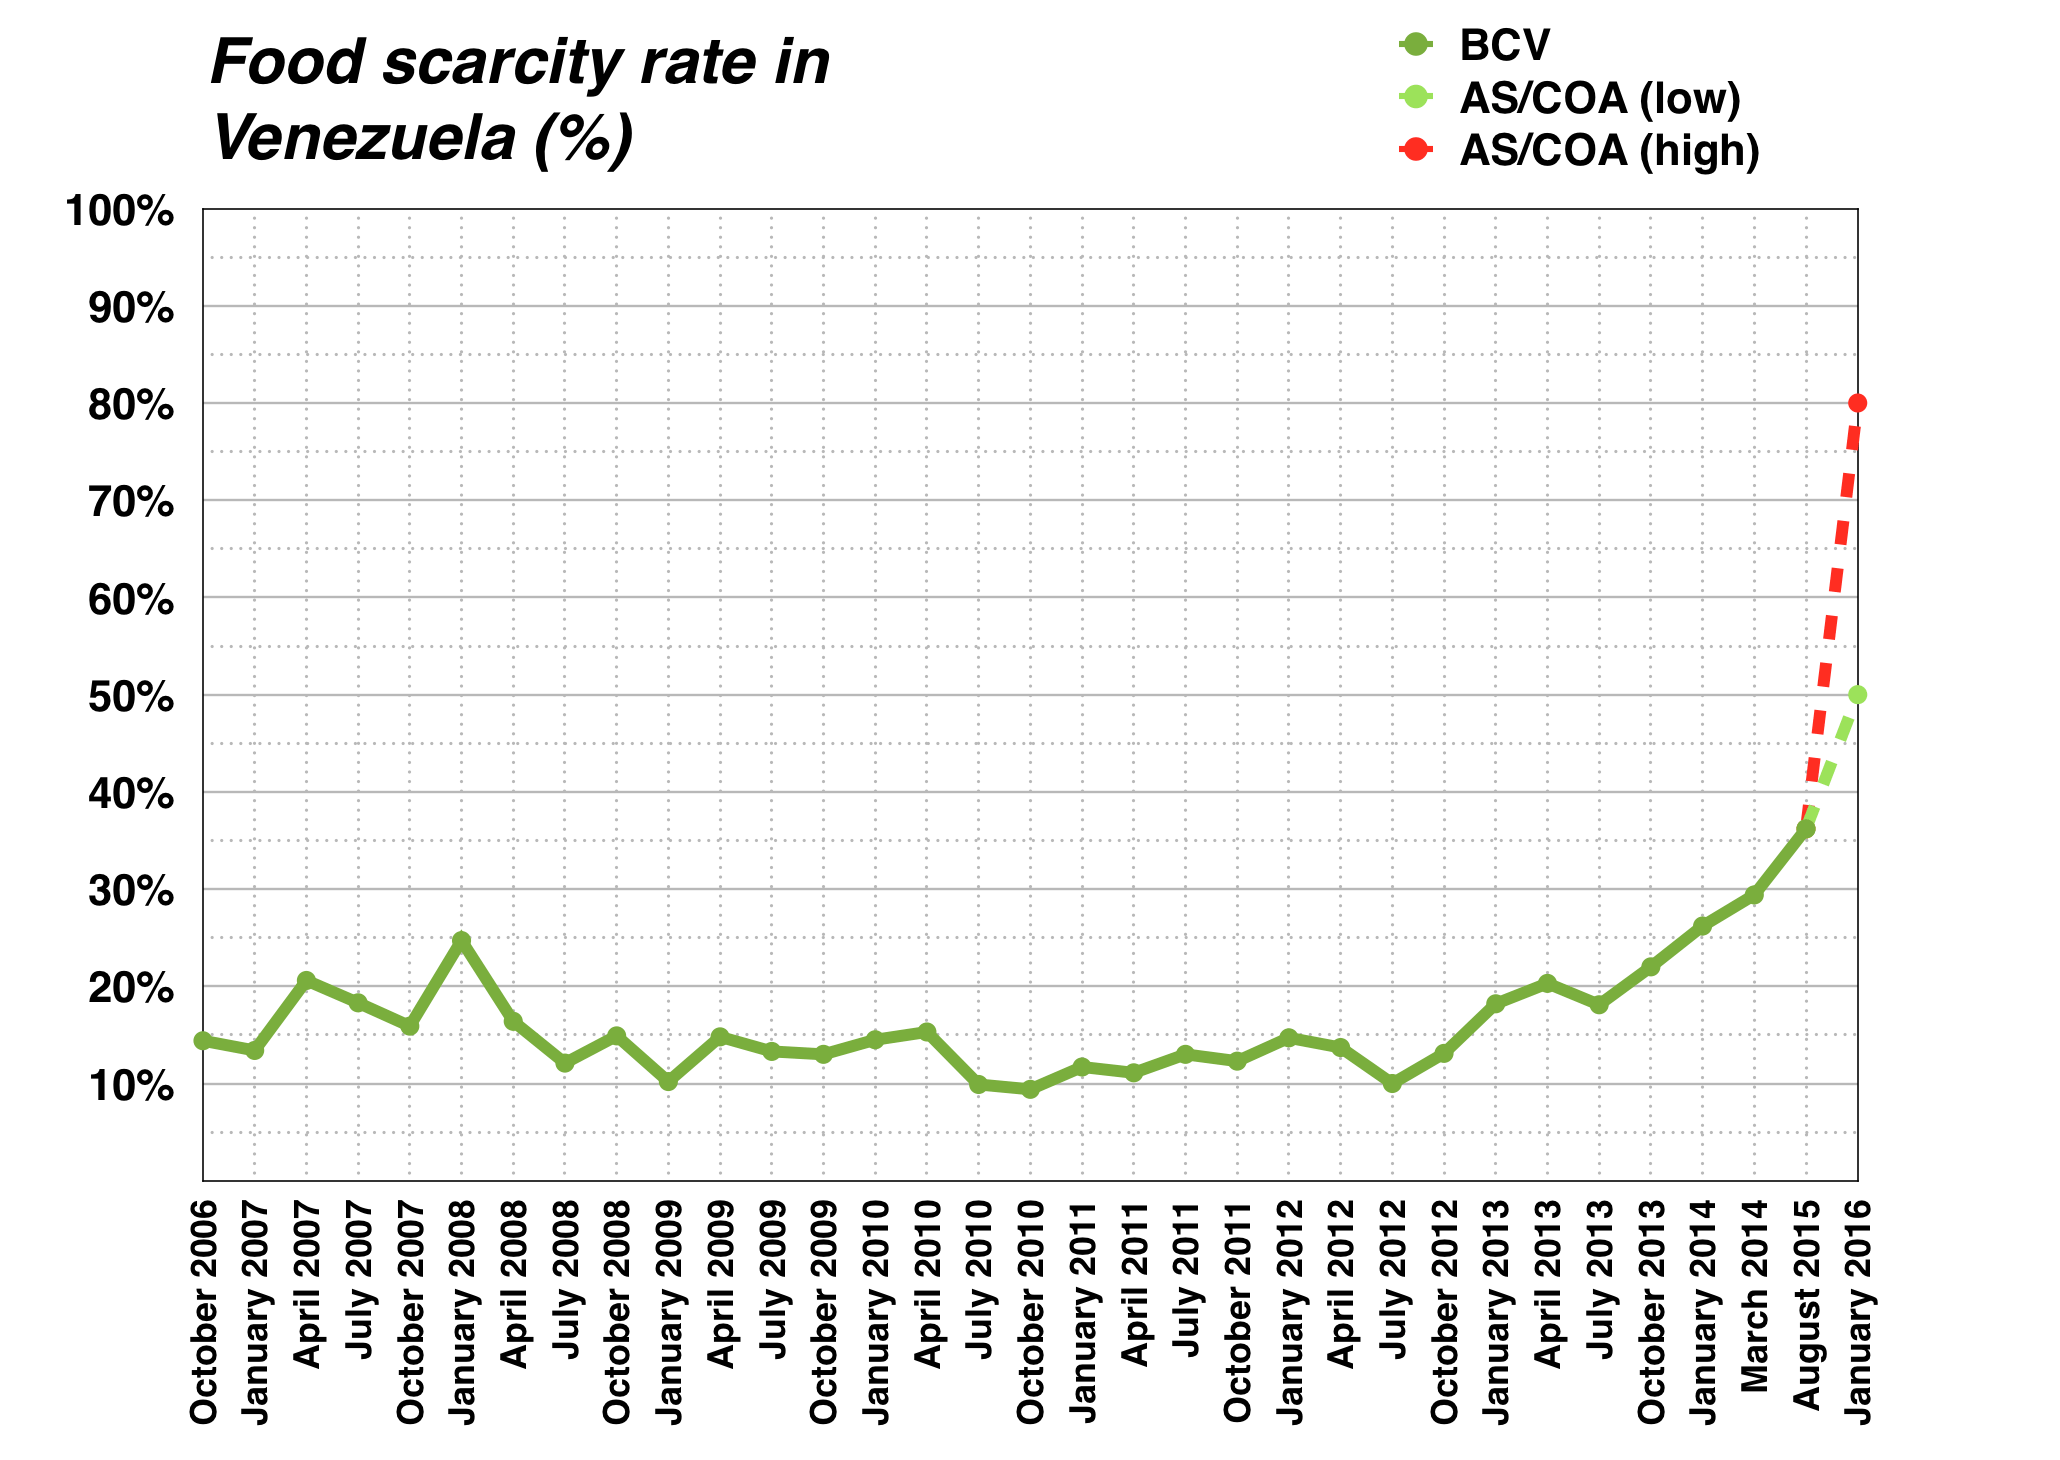 ArchivoFood scarcity in Venezuela graphpng  Wikipedia